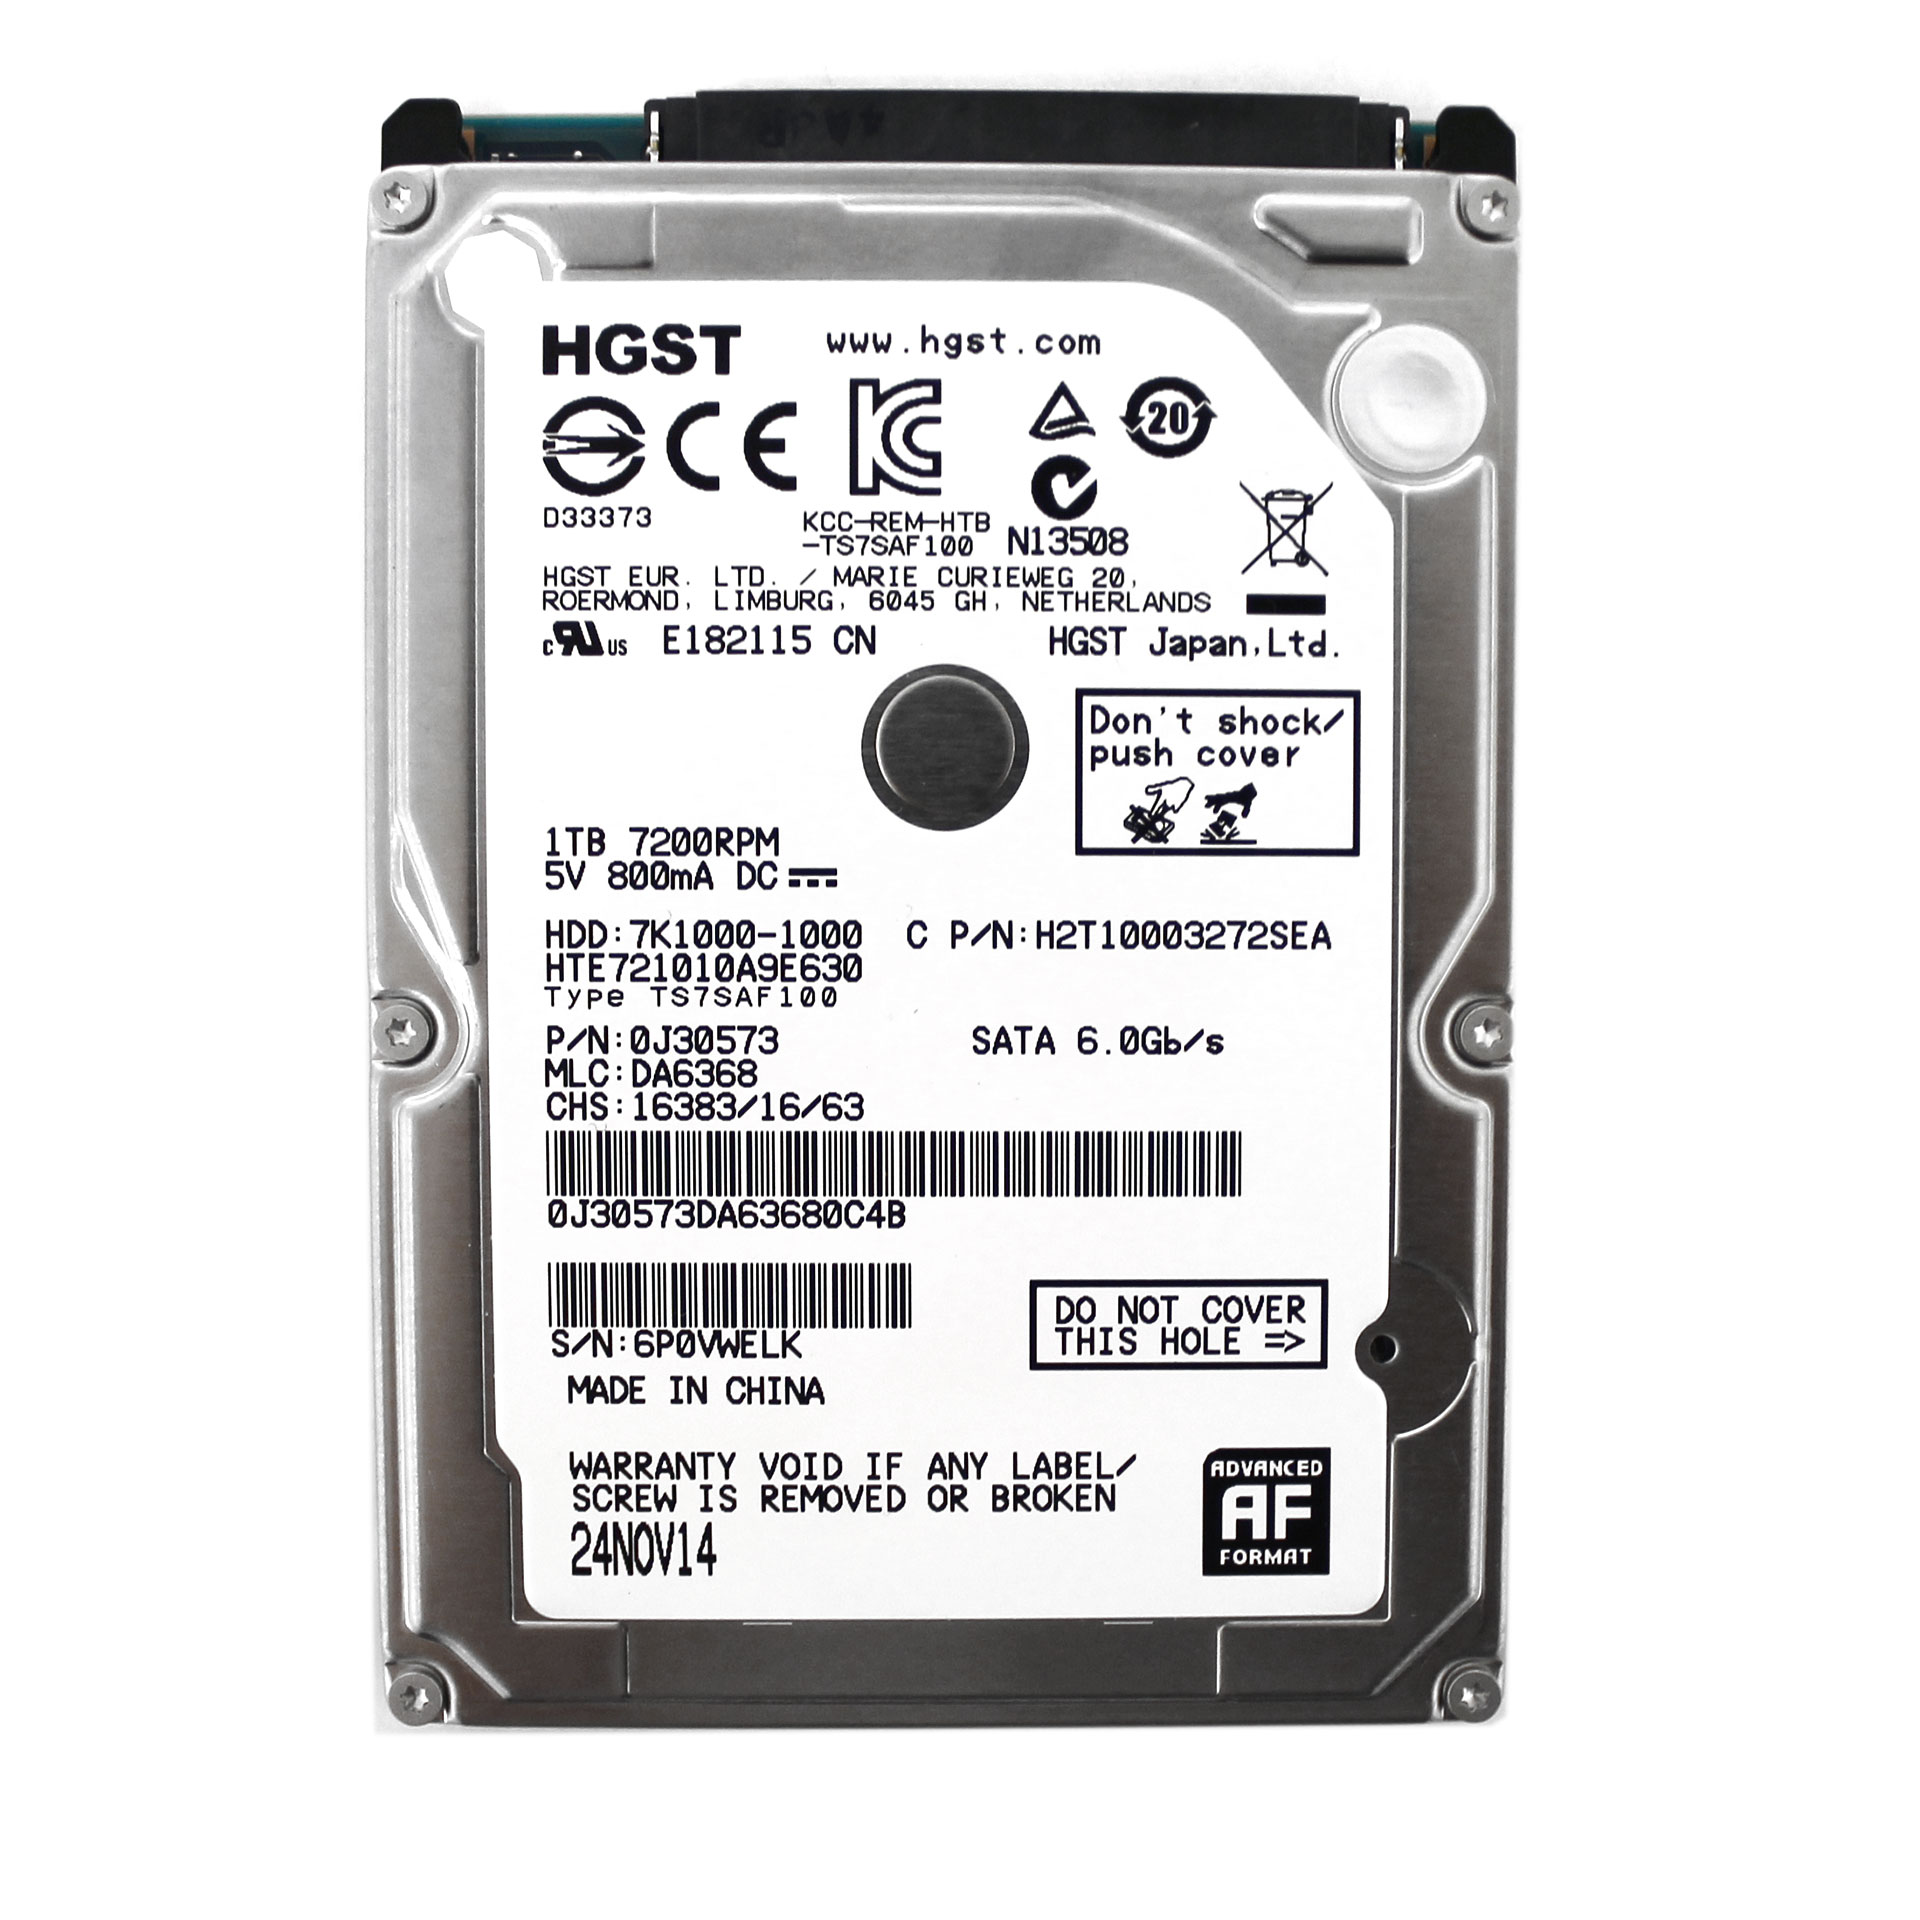 "HGST Travelstar 1TB HTE721010A9E630 0J30573 2.5"" Notebook HDD"